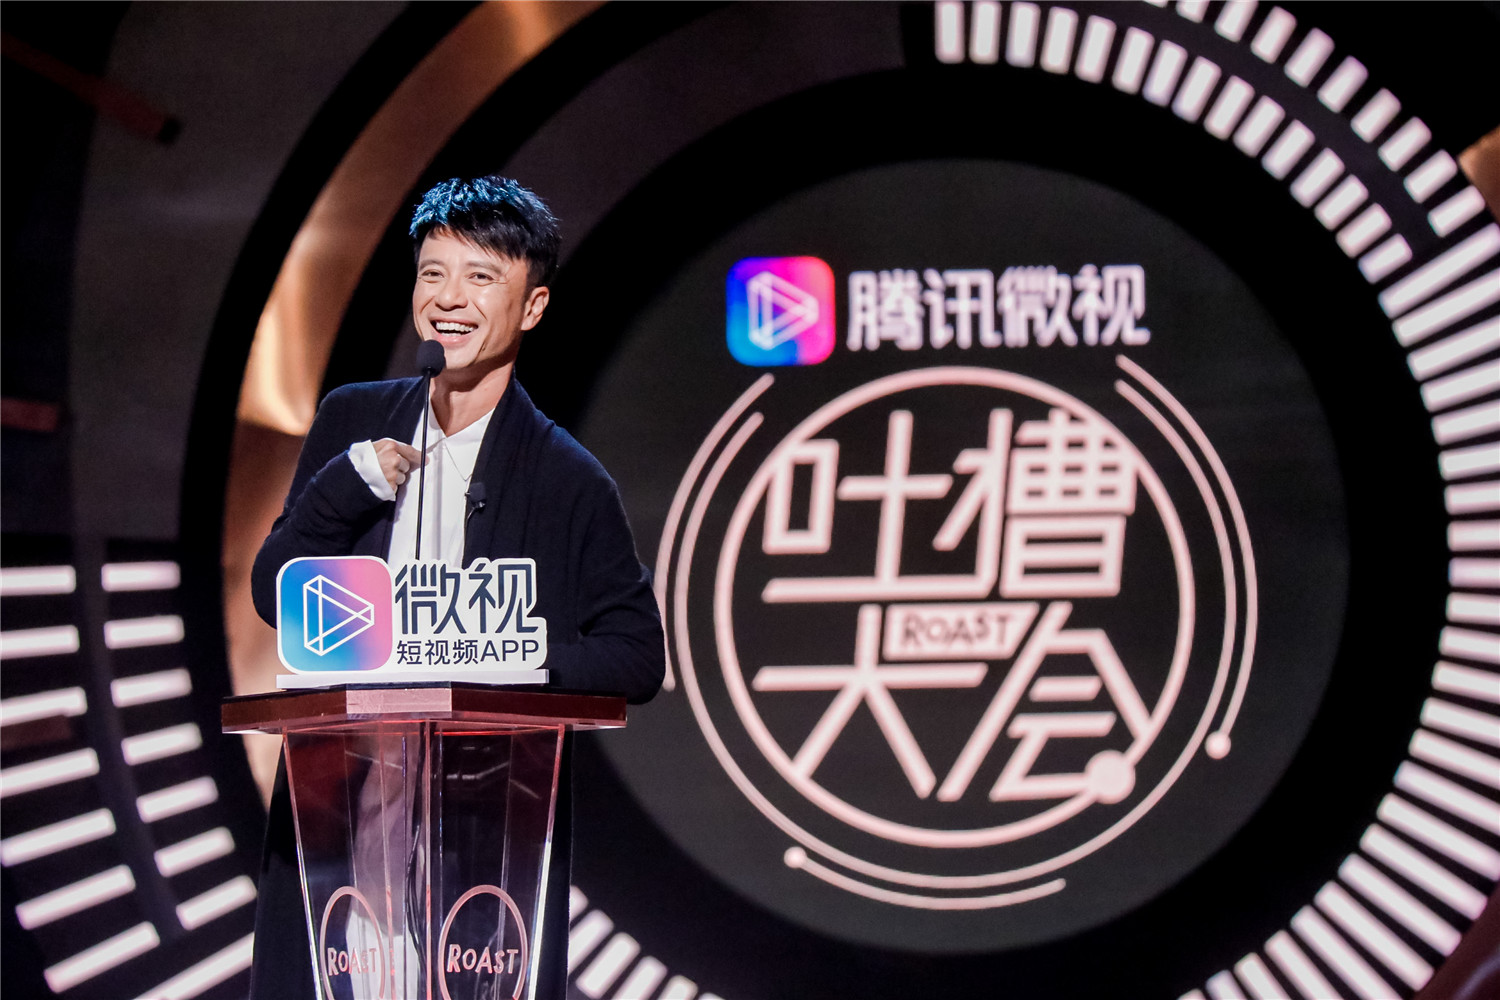 Hacken lee attended the fun fair and won the title of talk king netizen.